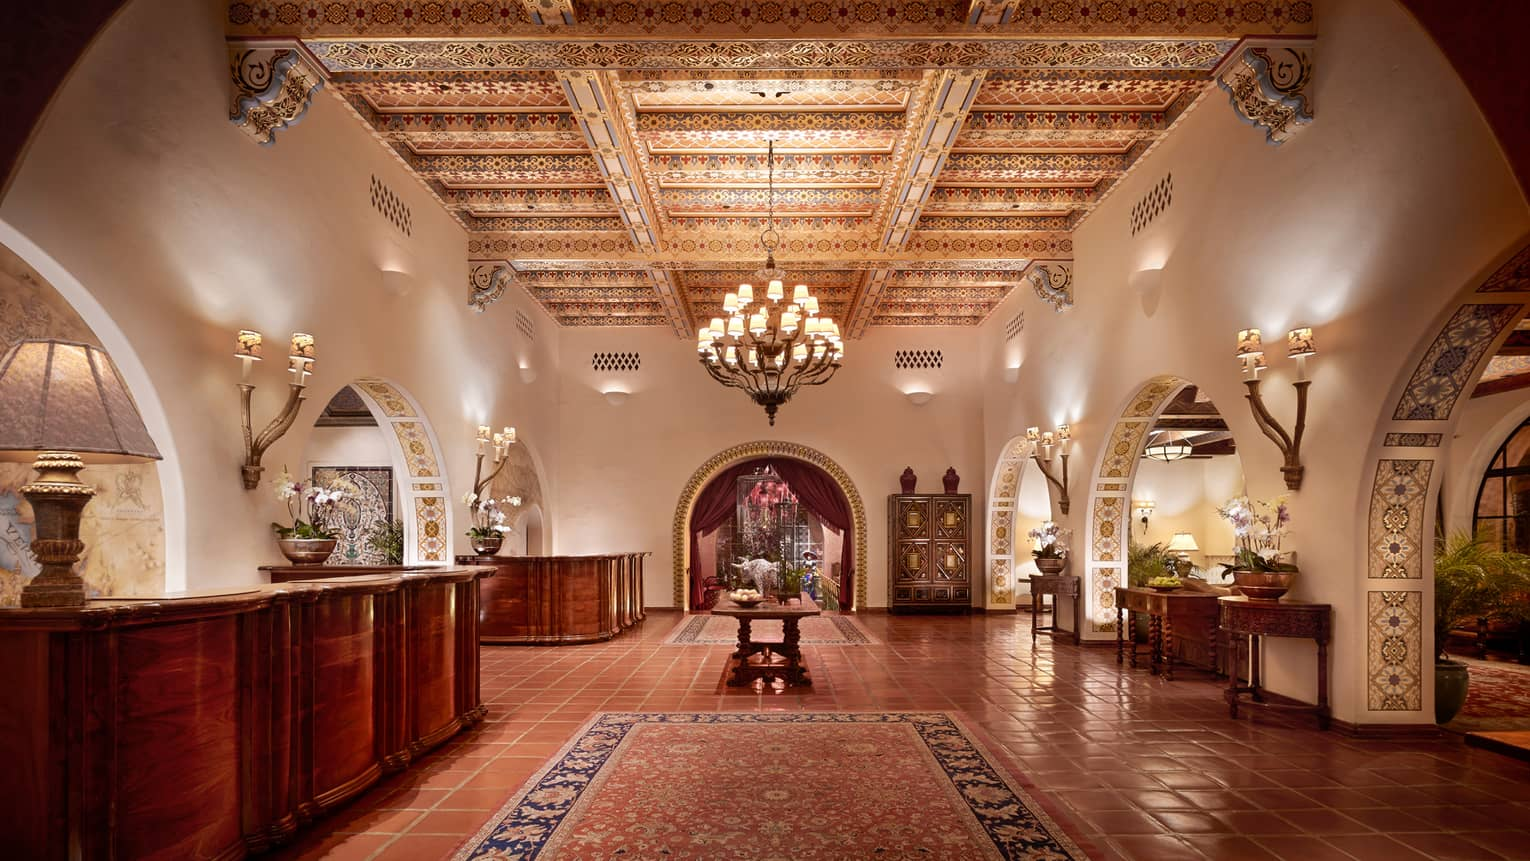 Colourful Spanish tiles covering ceiling, beams above chandelier, area rug, hotel lobby